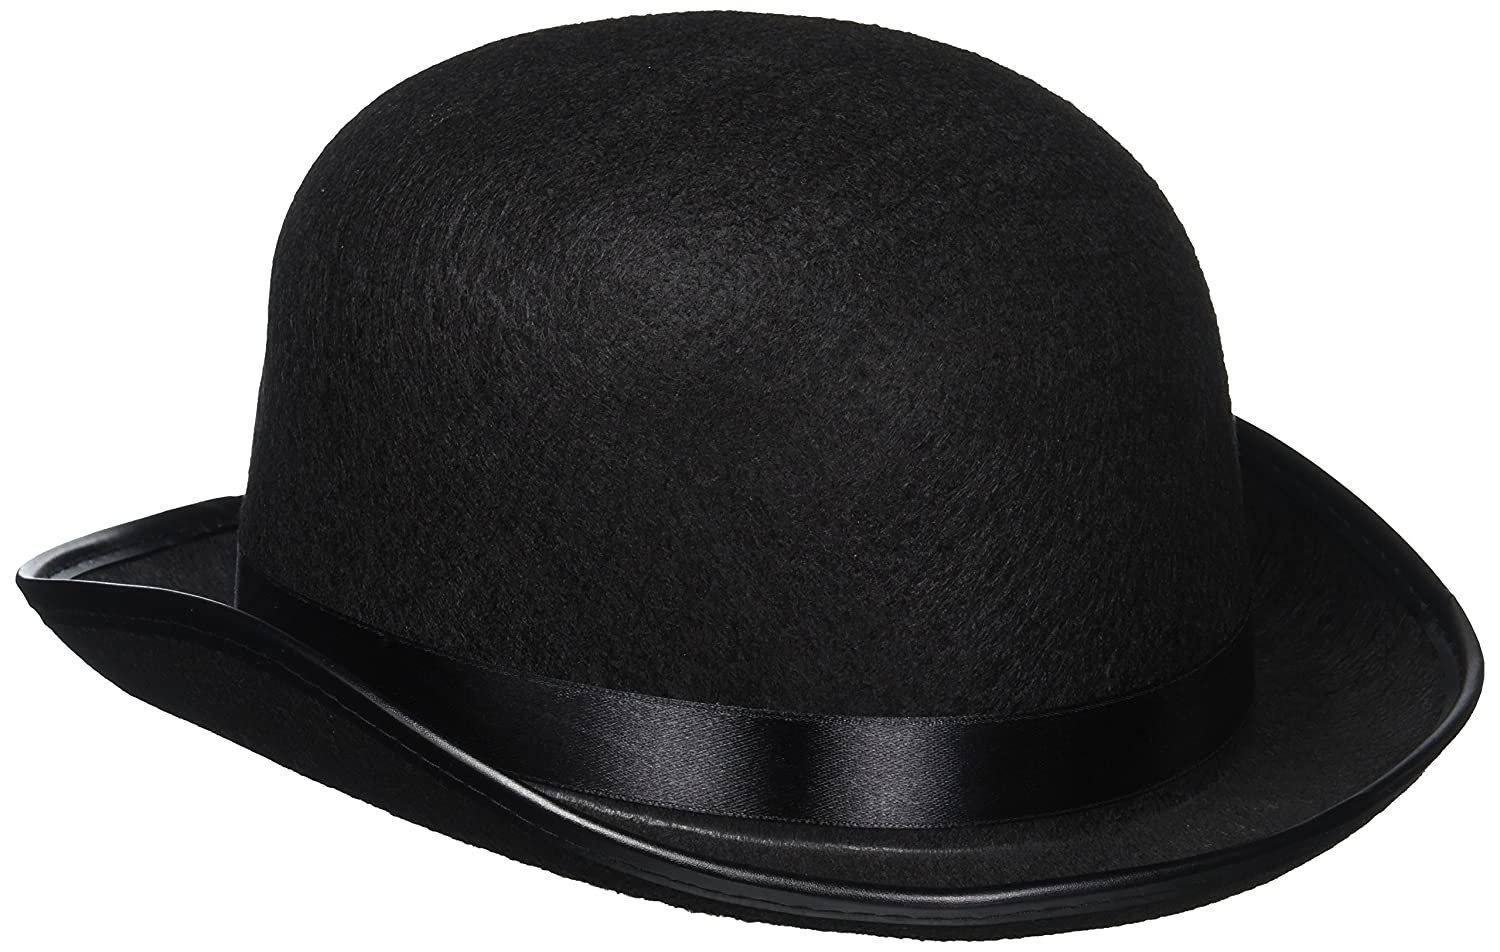 0010649ee27cf Classic Black Derby Hat  One Sioze Fits Adults   Children Great for School  Plays